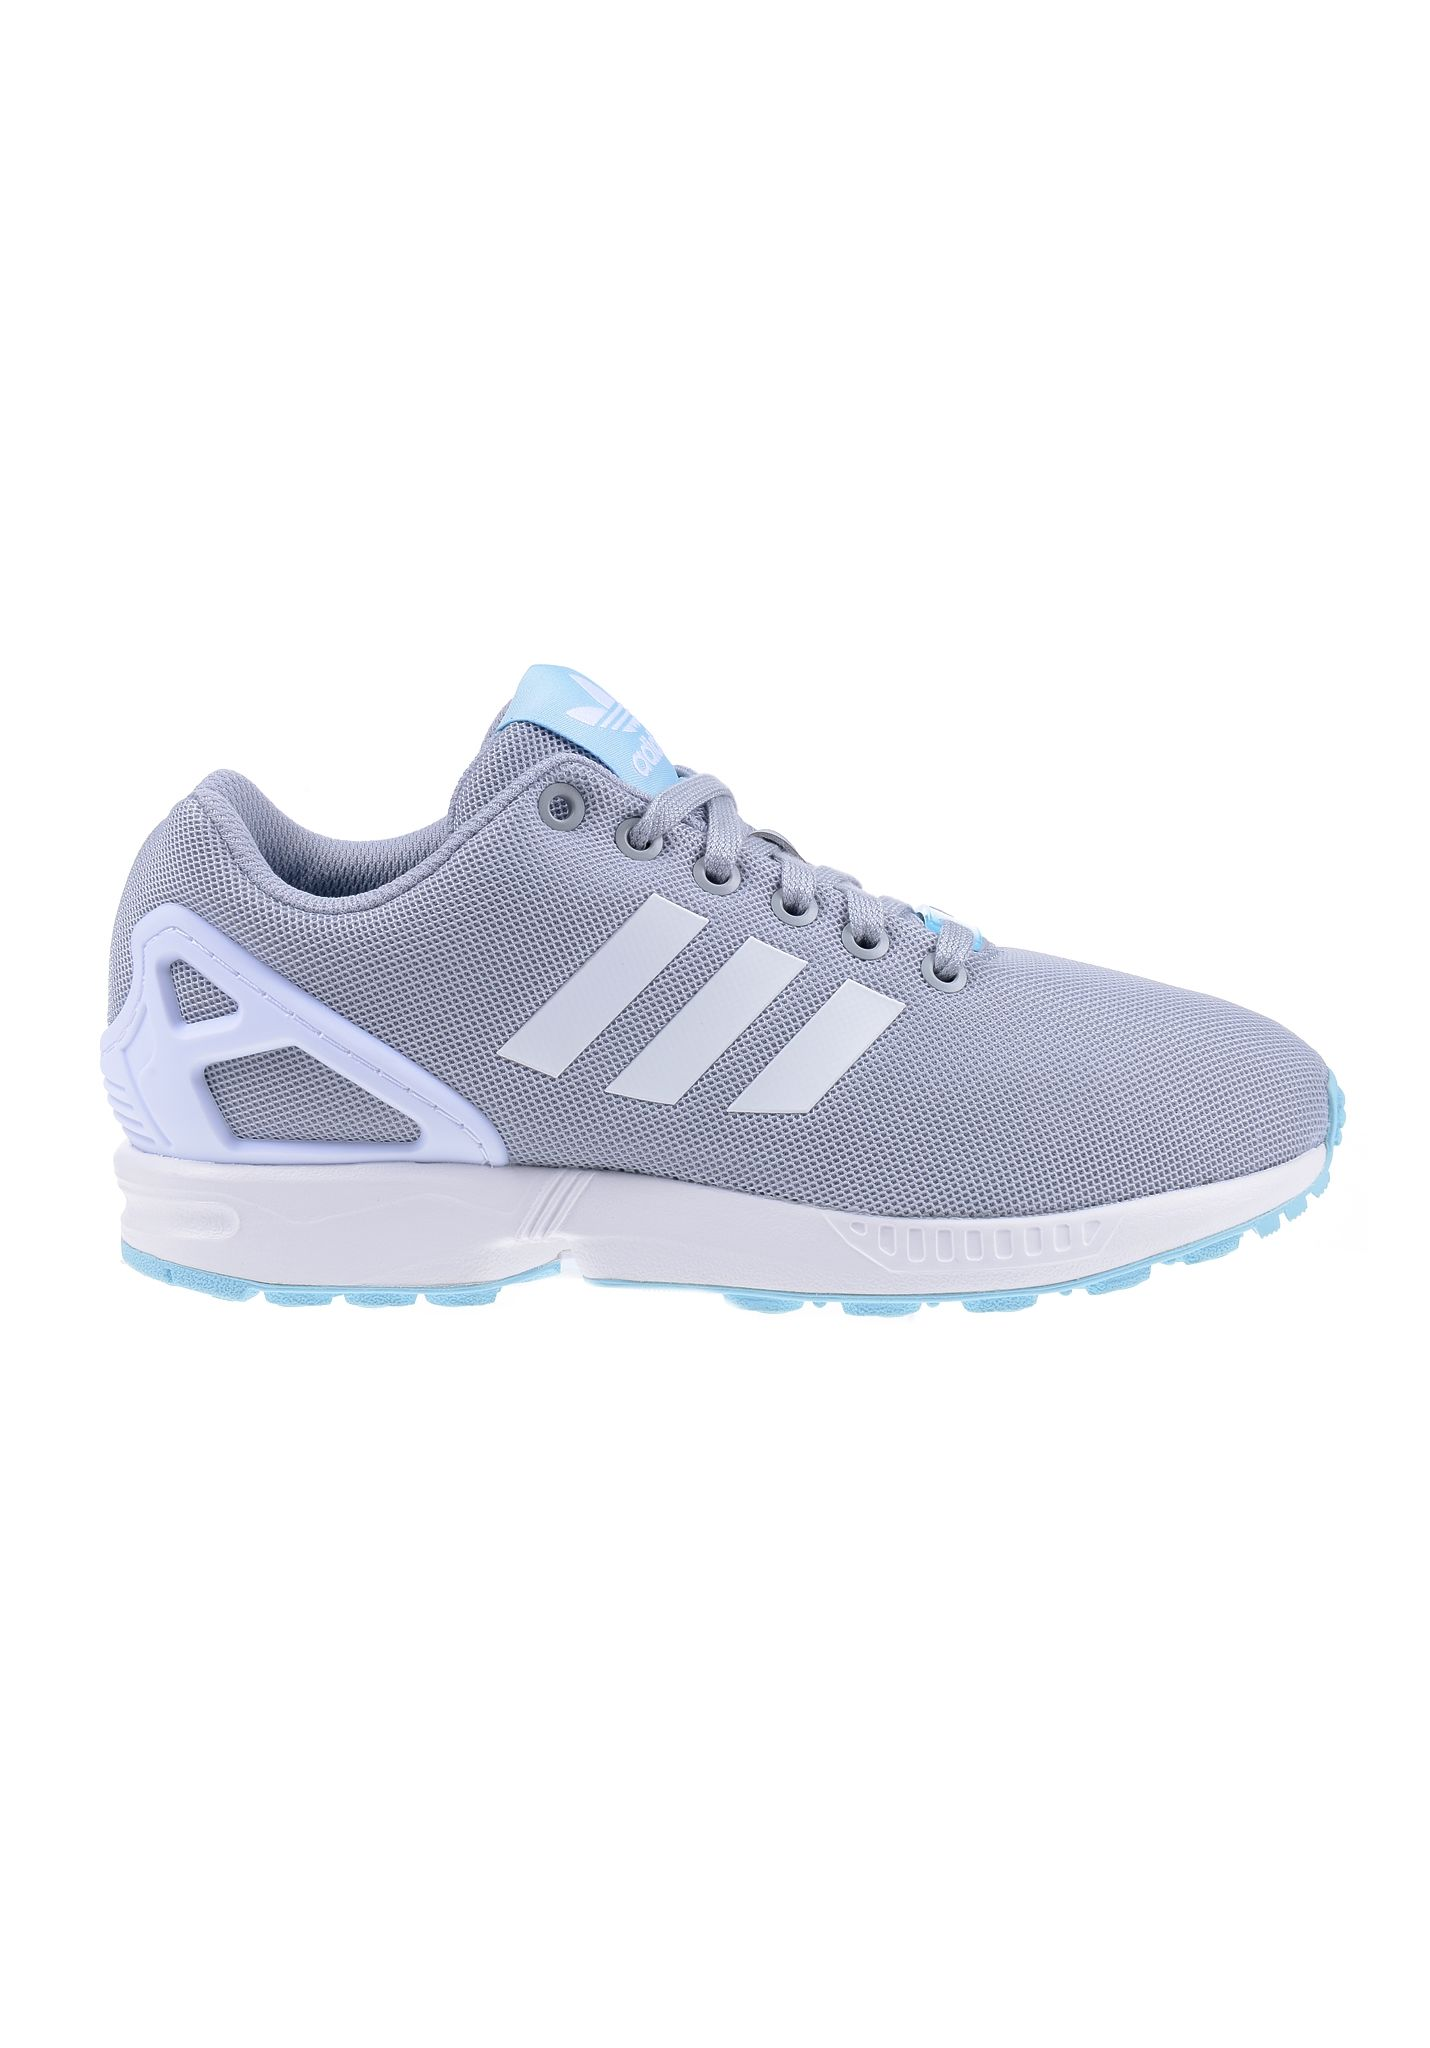 adidas sneaker zx flux damen ibs. Black Bedroom Furniture Sets. Home Design Ideas